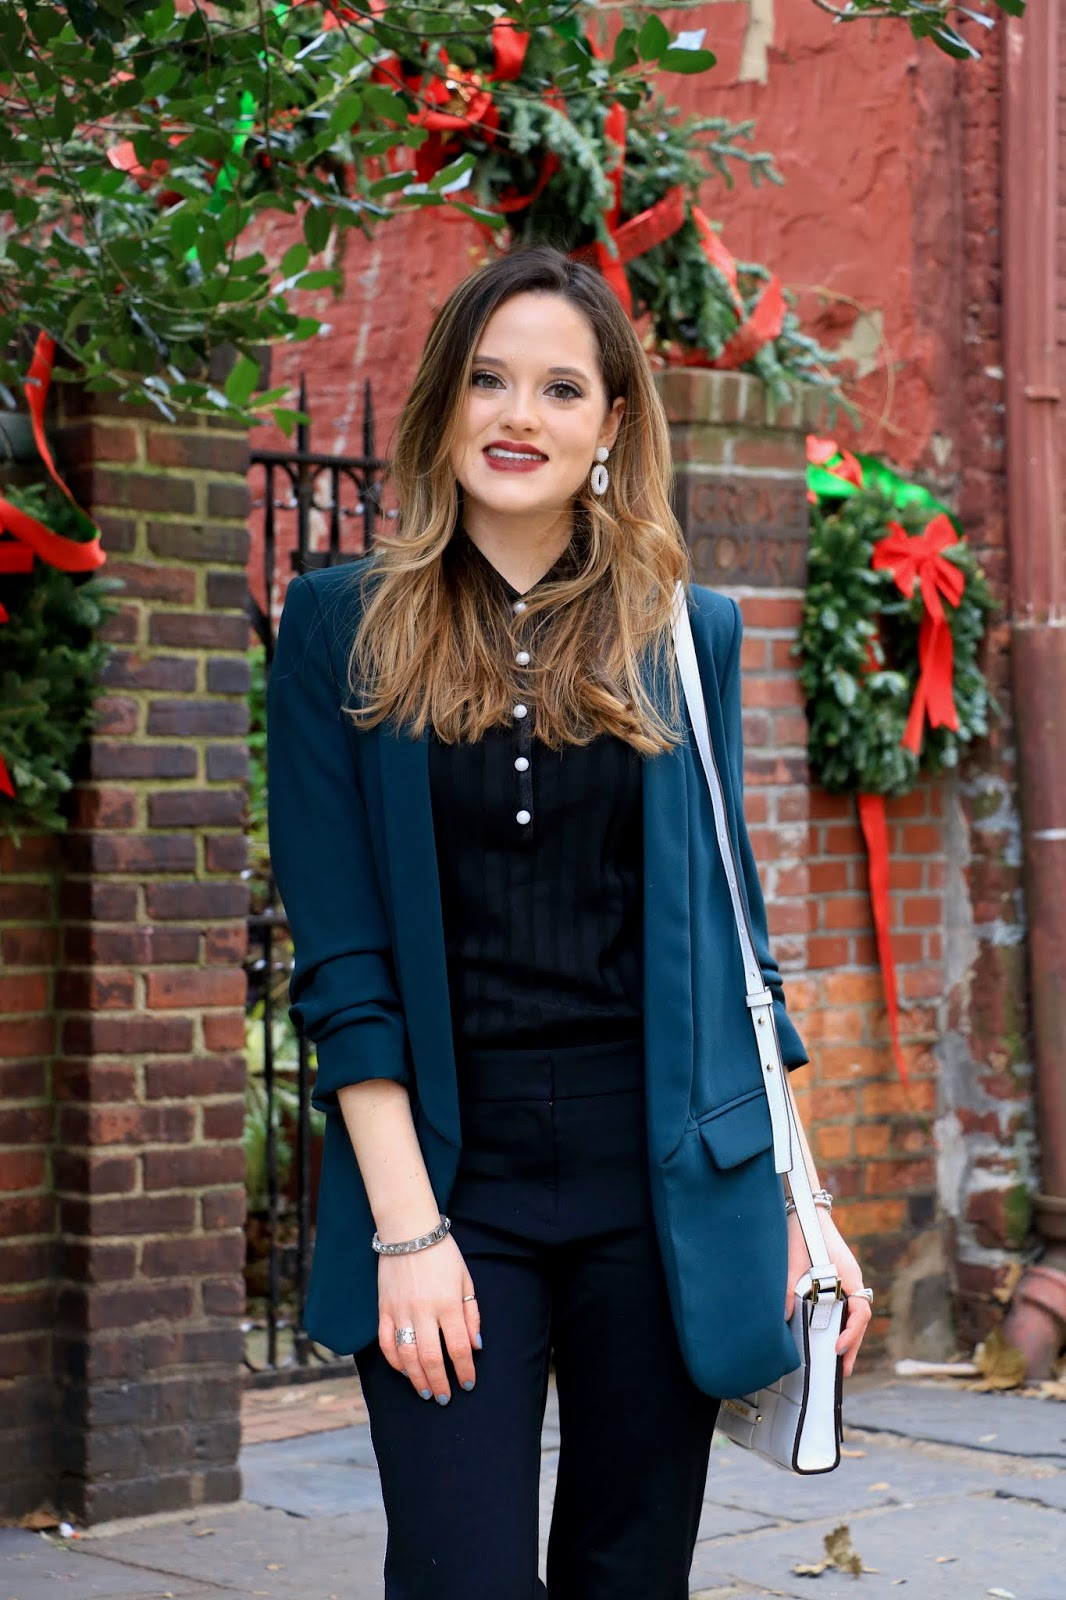 Nyc fashion blogger Kathleen Harper's holiday office party outfit